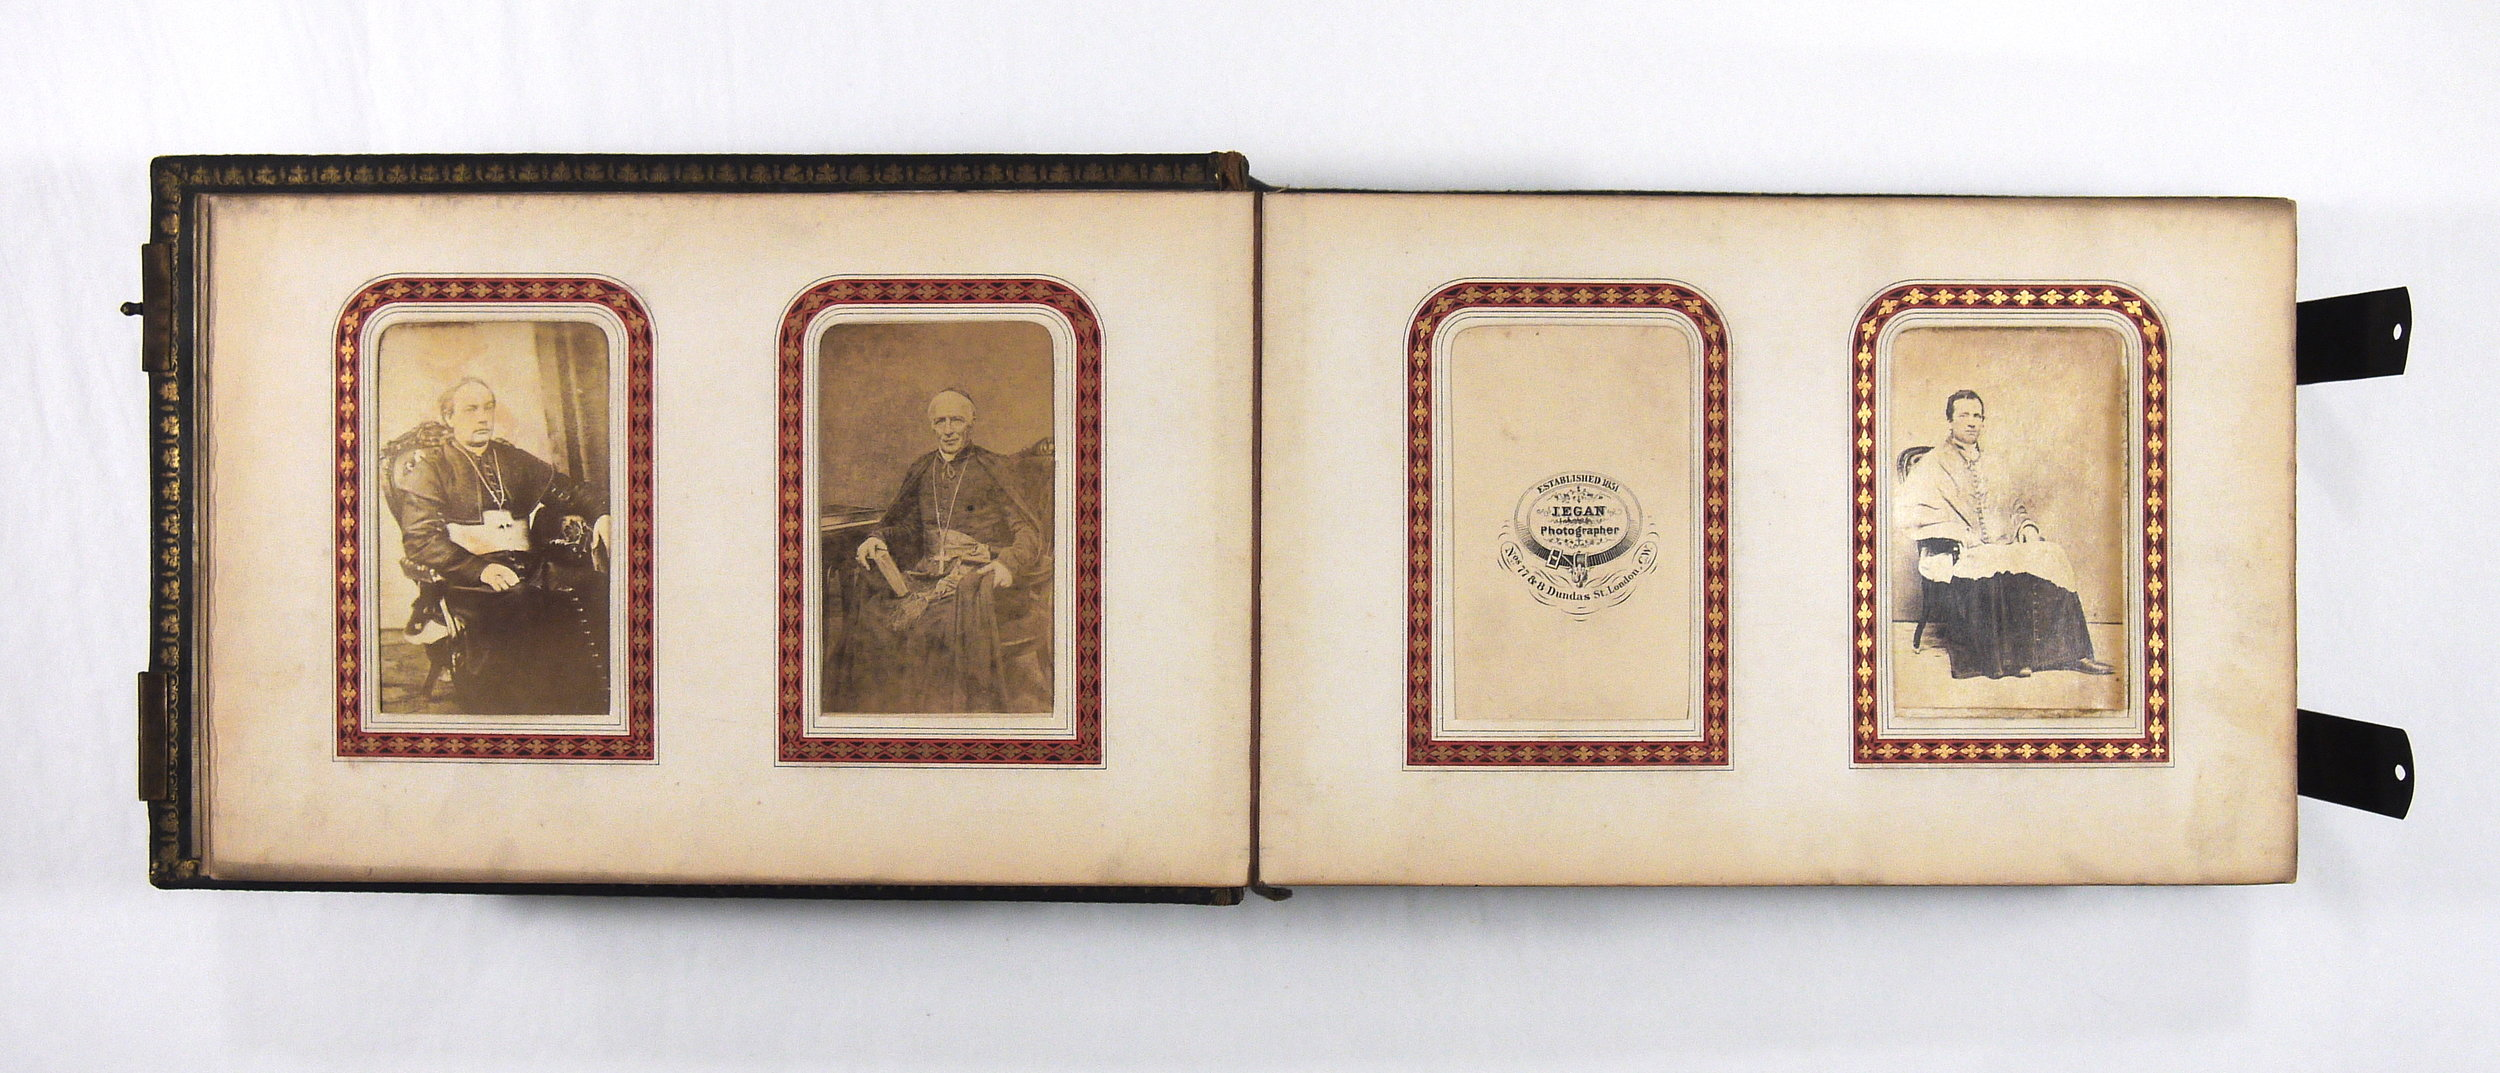 19th century carte de visite photograph album - conservation treatment